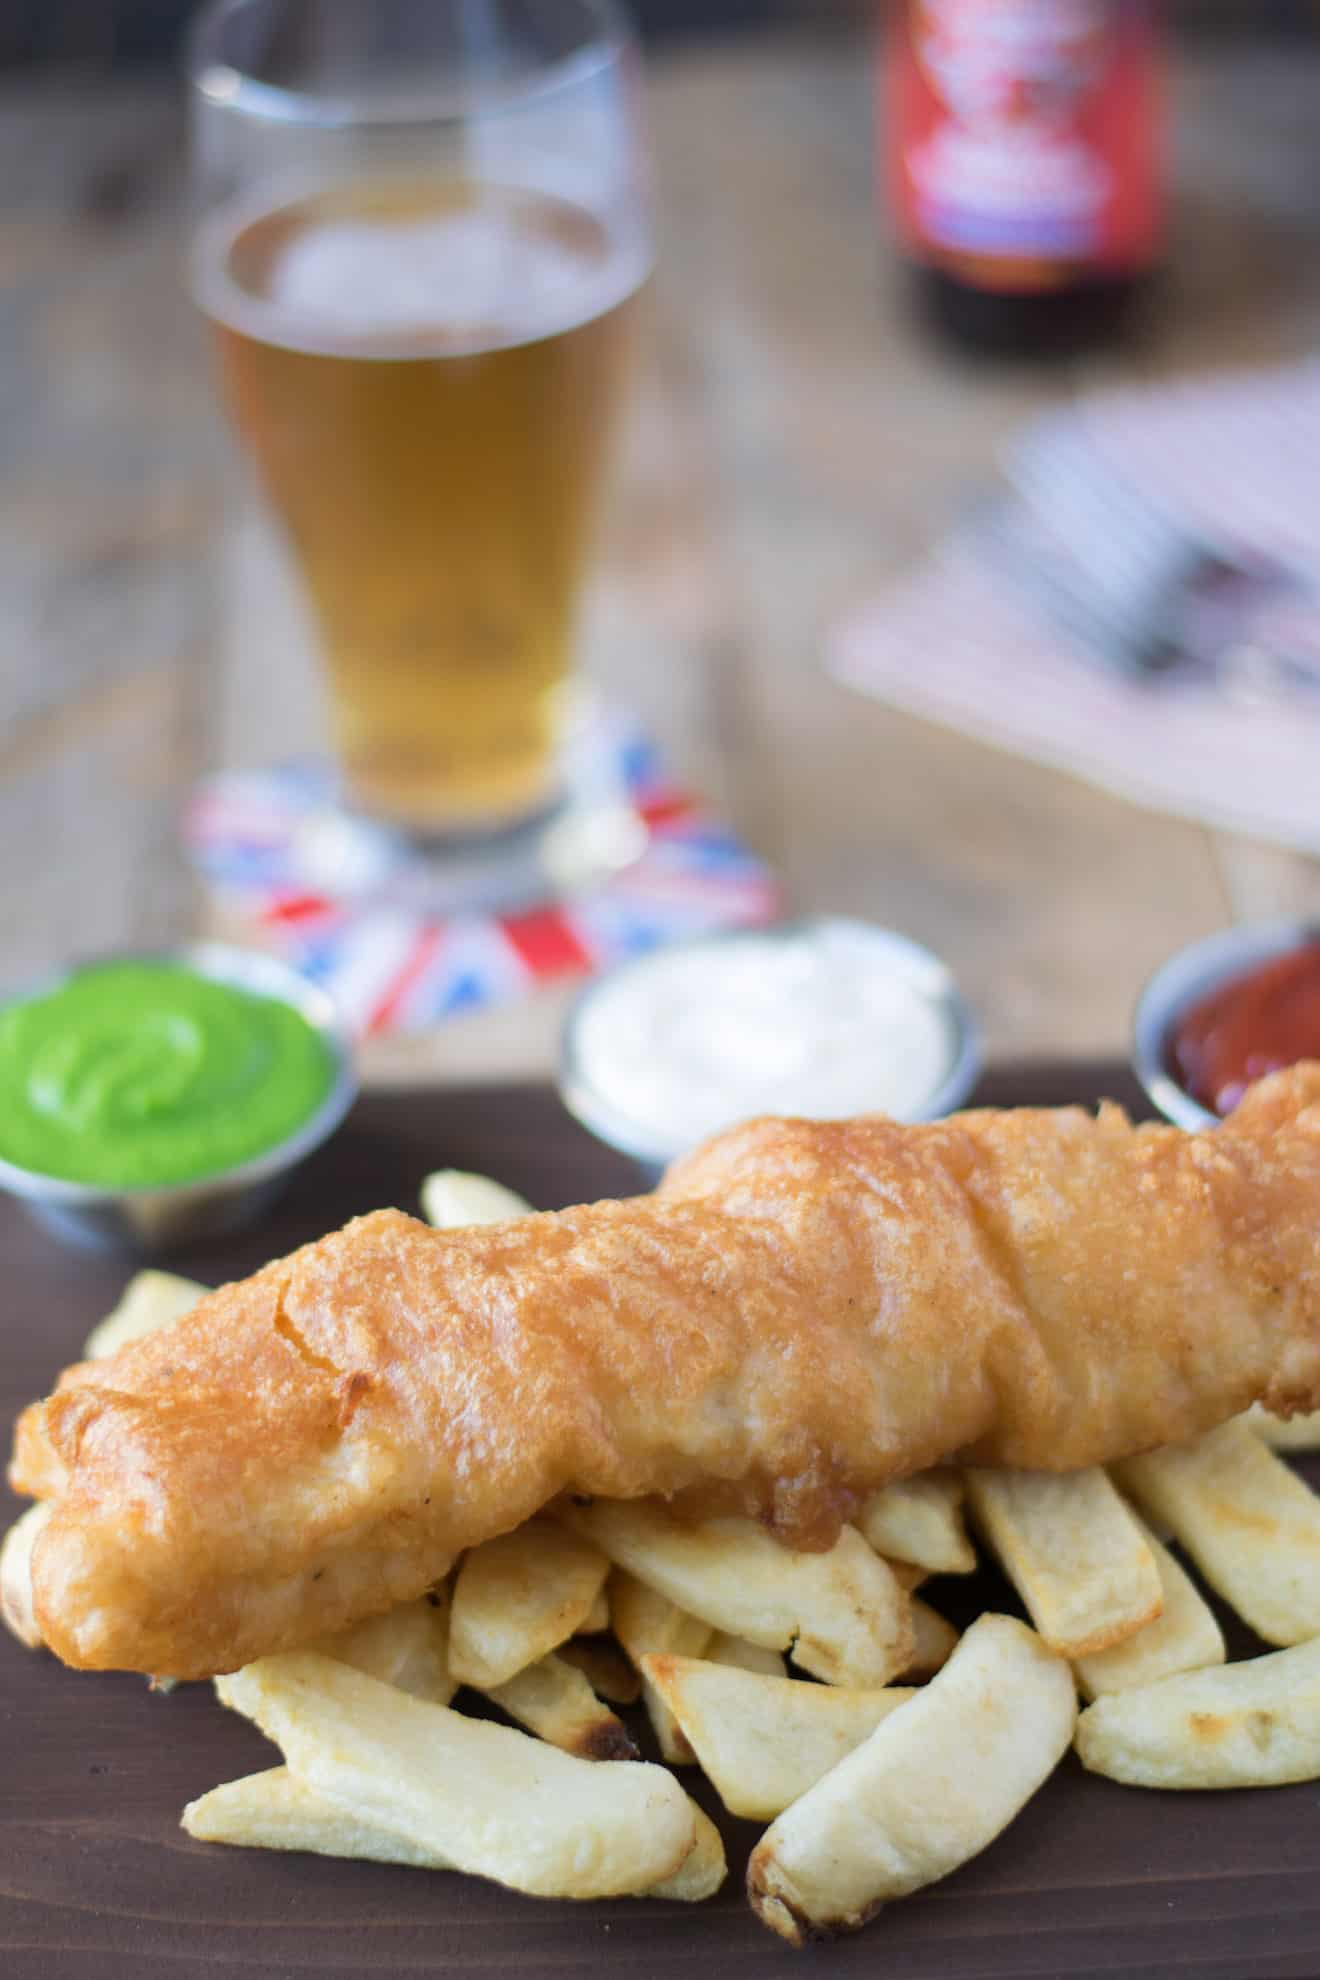 British fish and chips served on a board with a beer and condiments